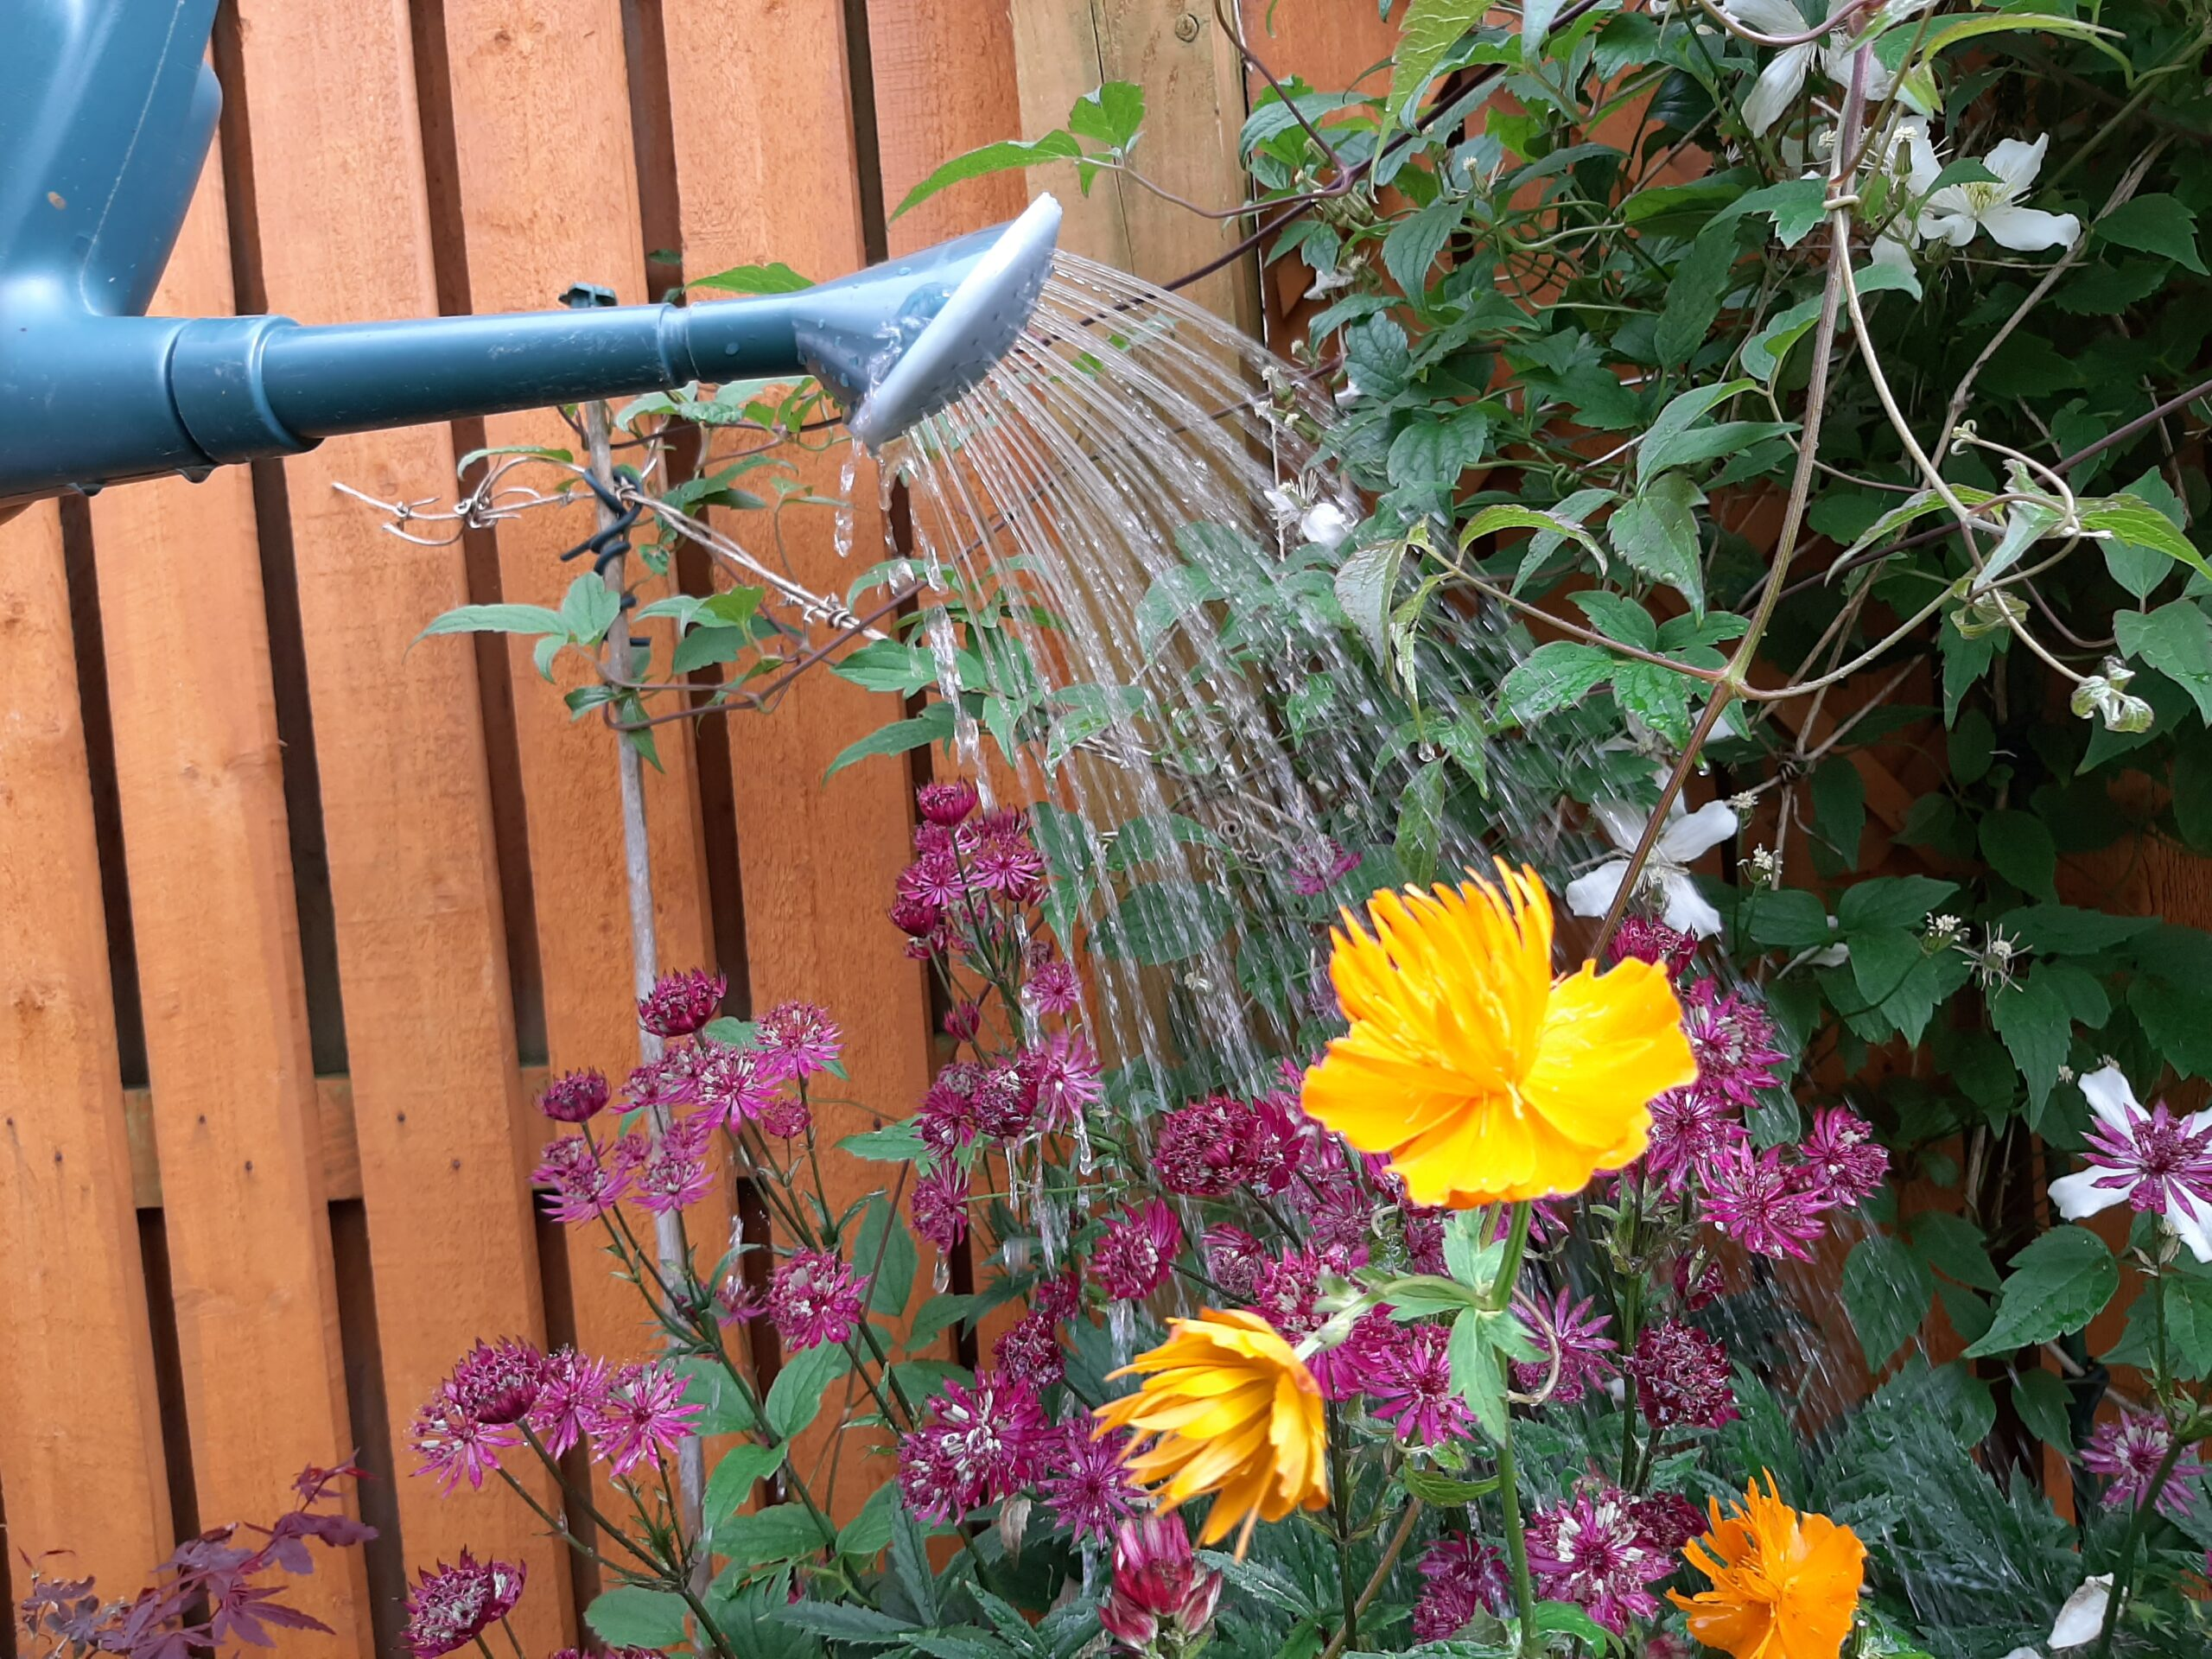 watering can with water coming from spout onto flowers